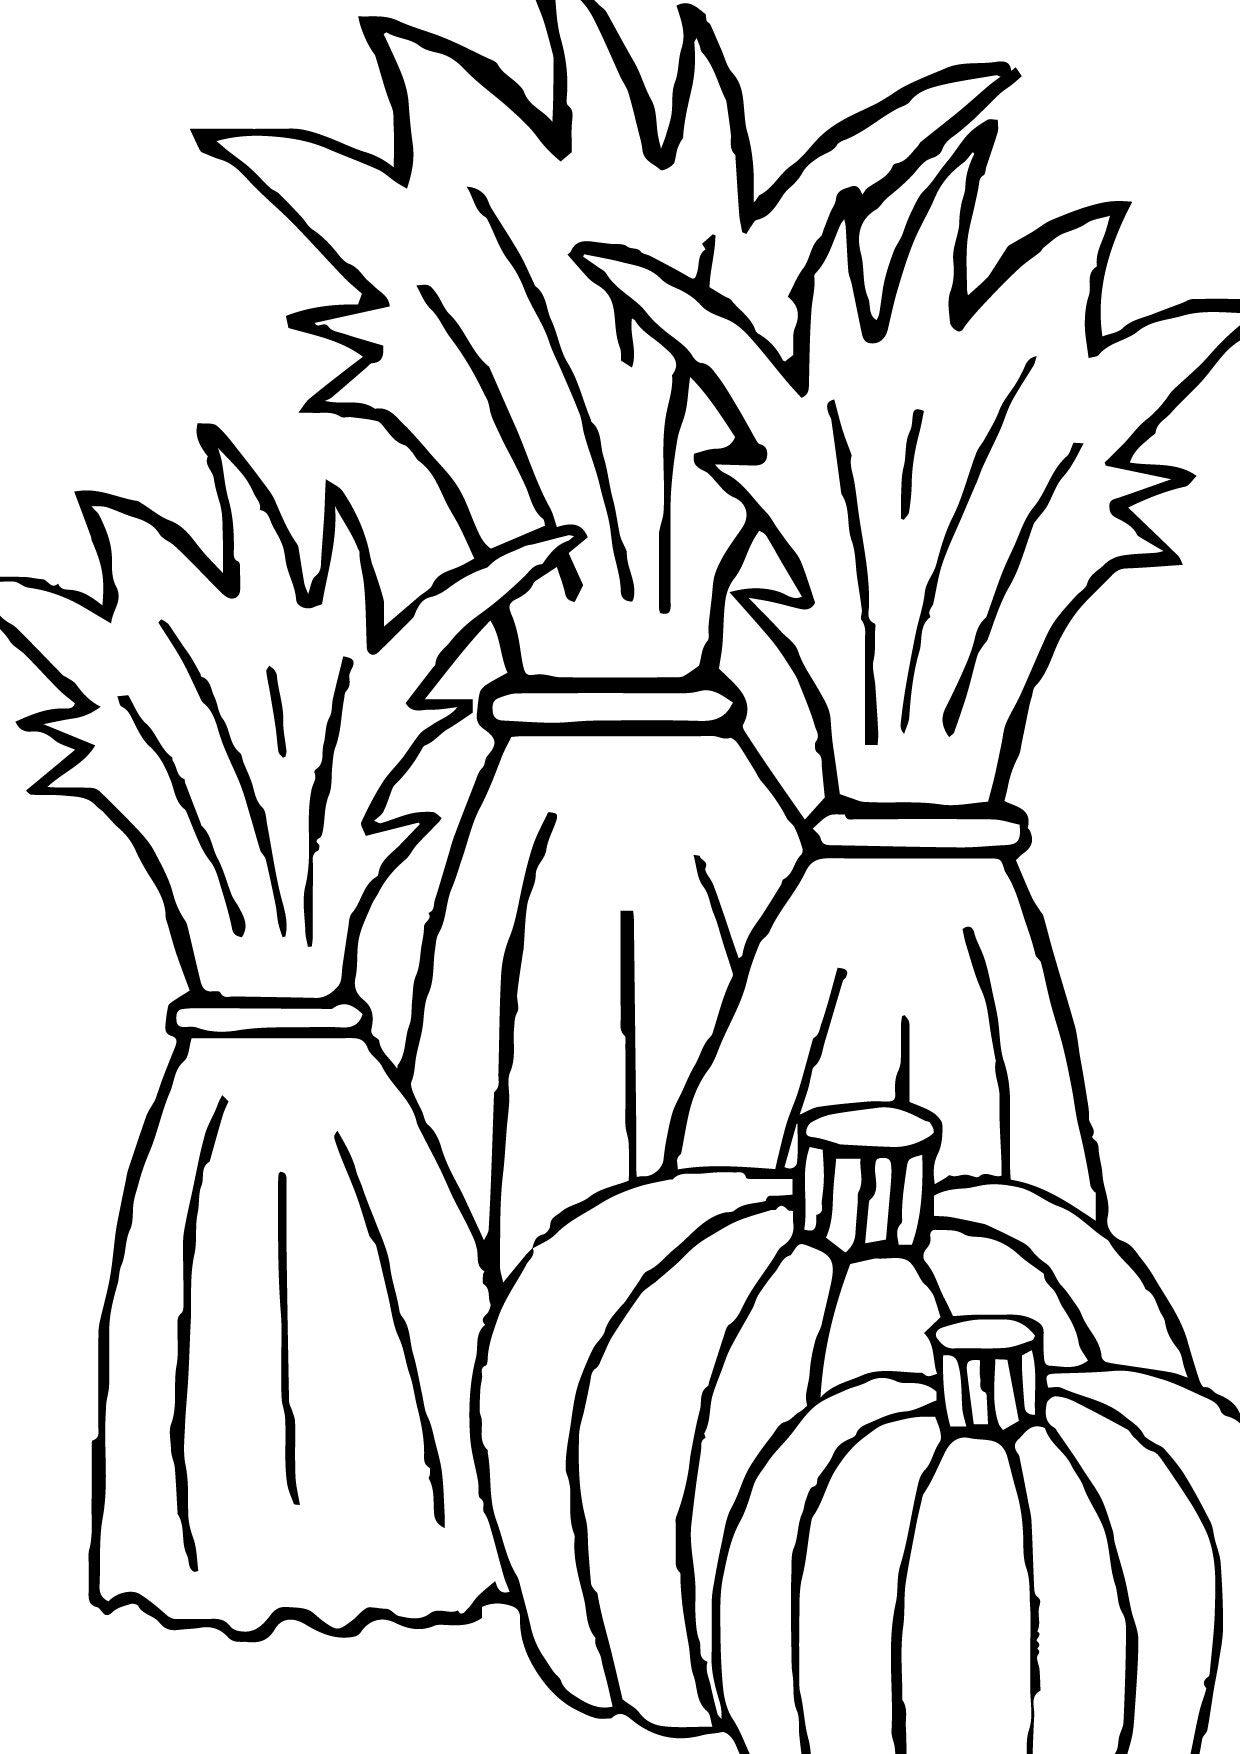 awesome corn stalk coloring page 08092015_081307 Fall